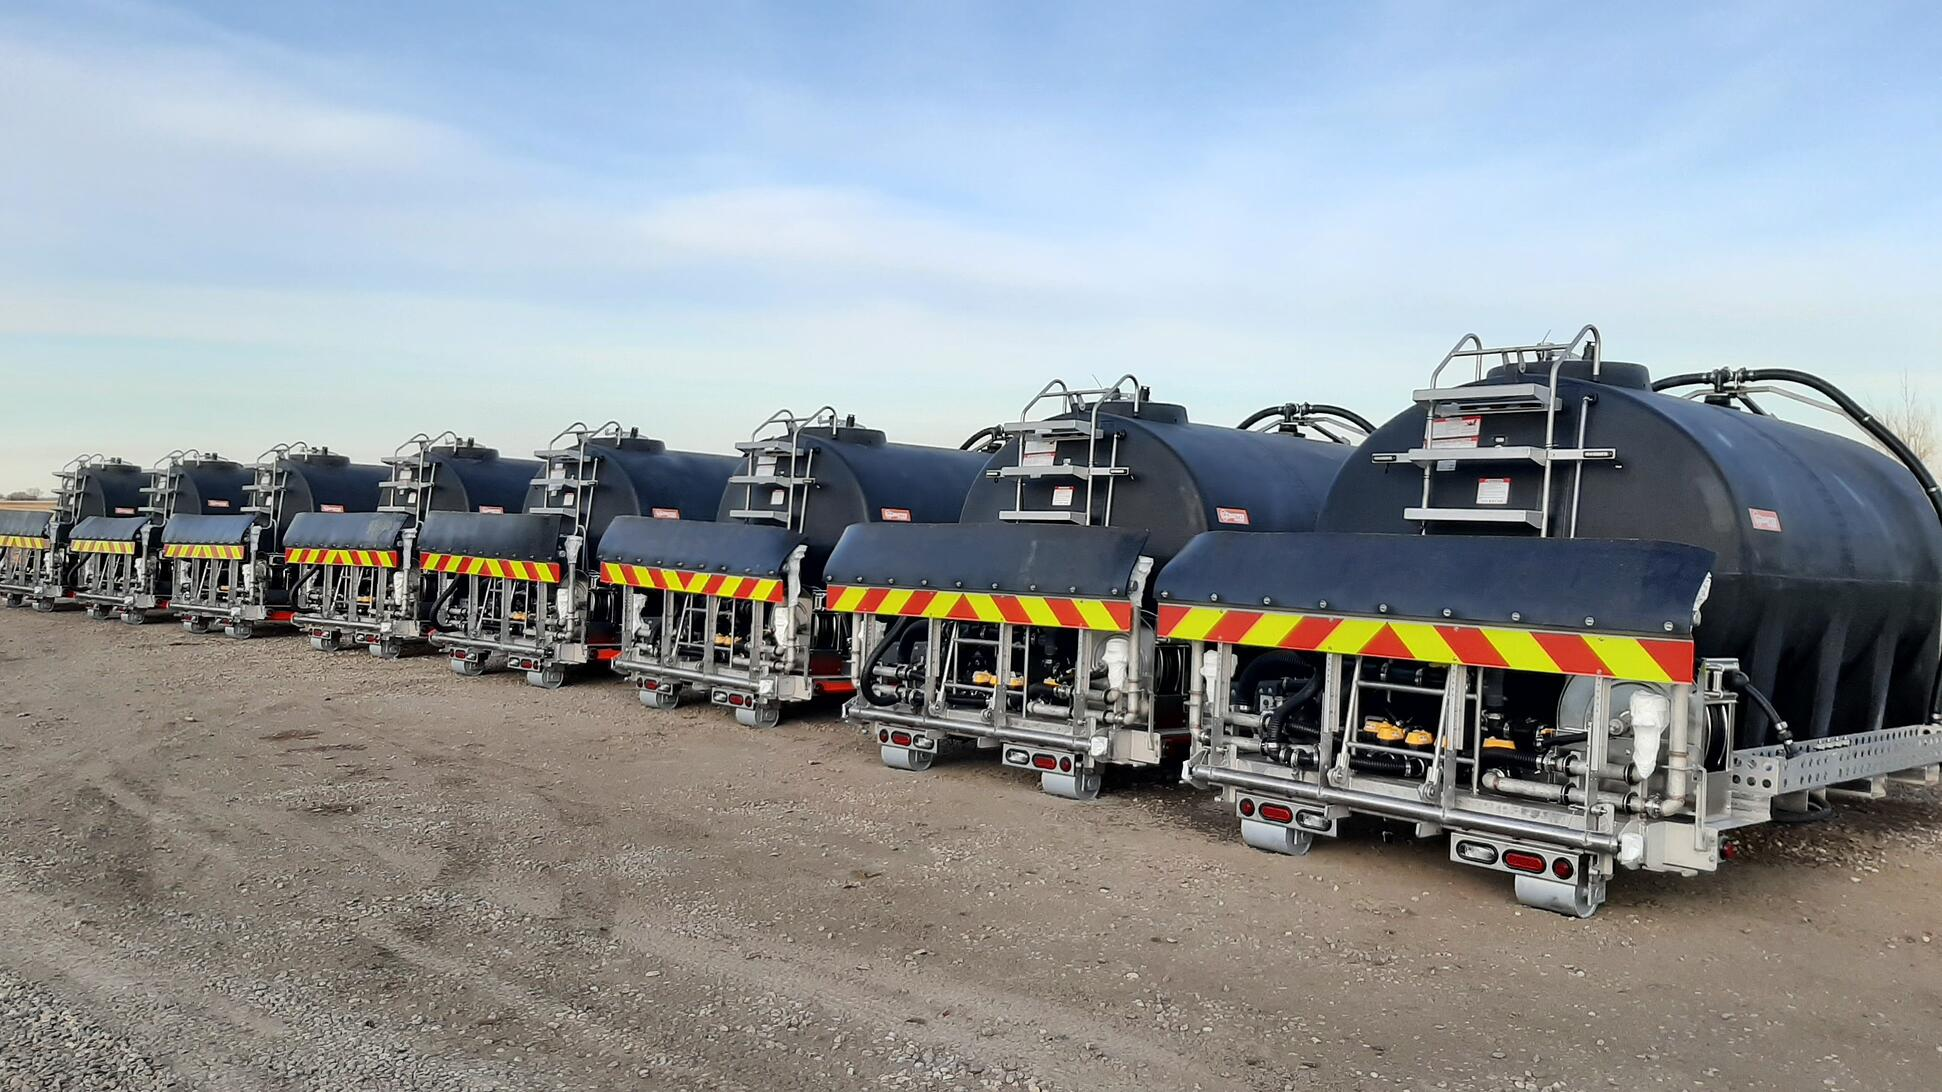 NEED SOLUTIONS FOR YOUR FLEET?